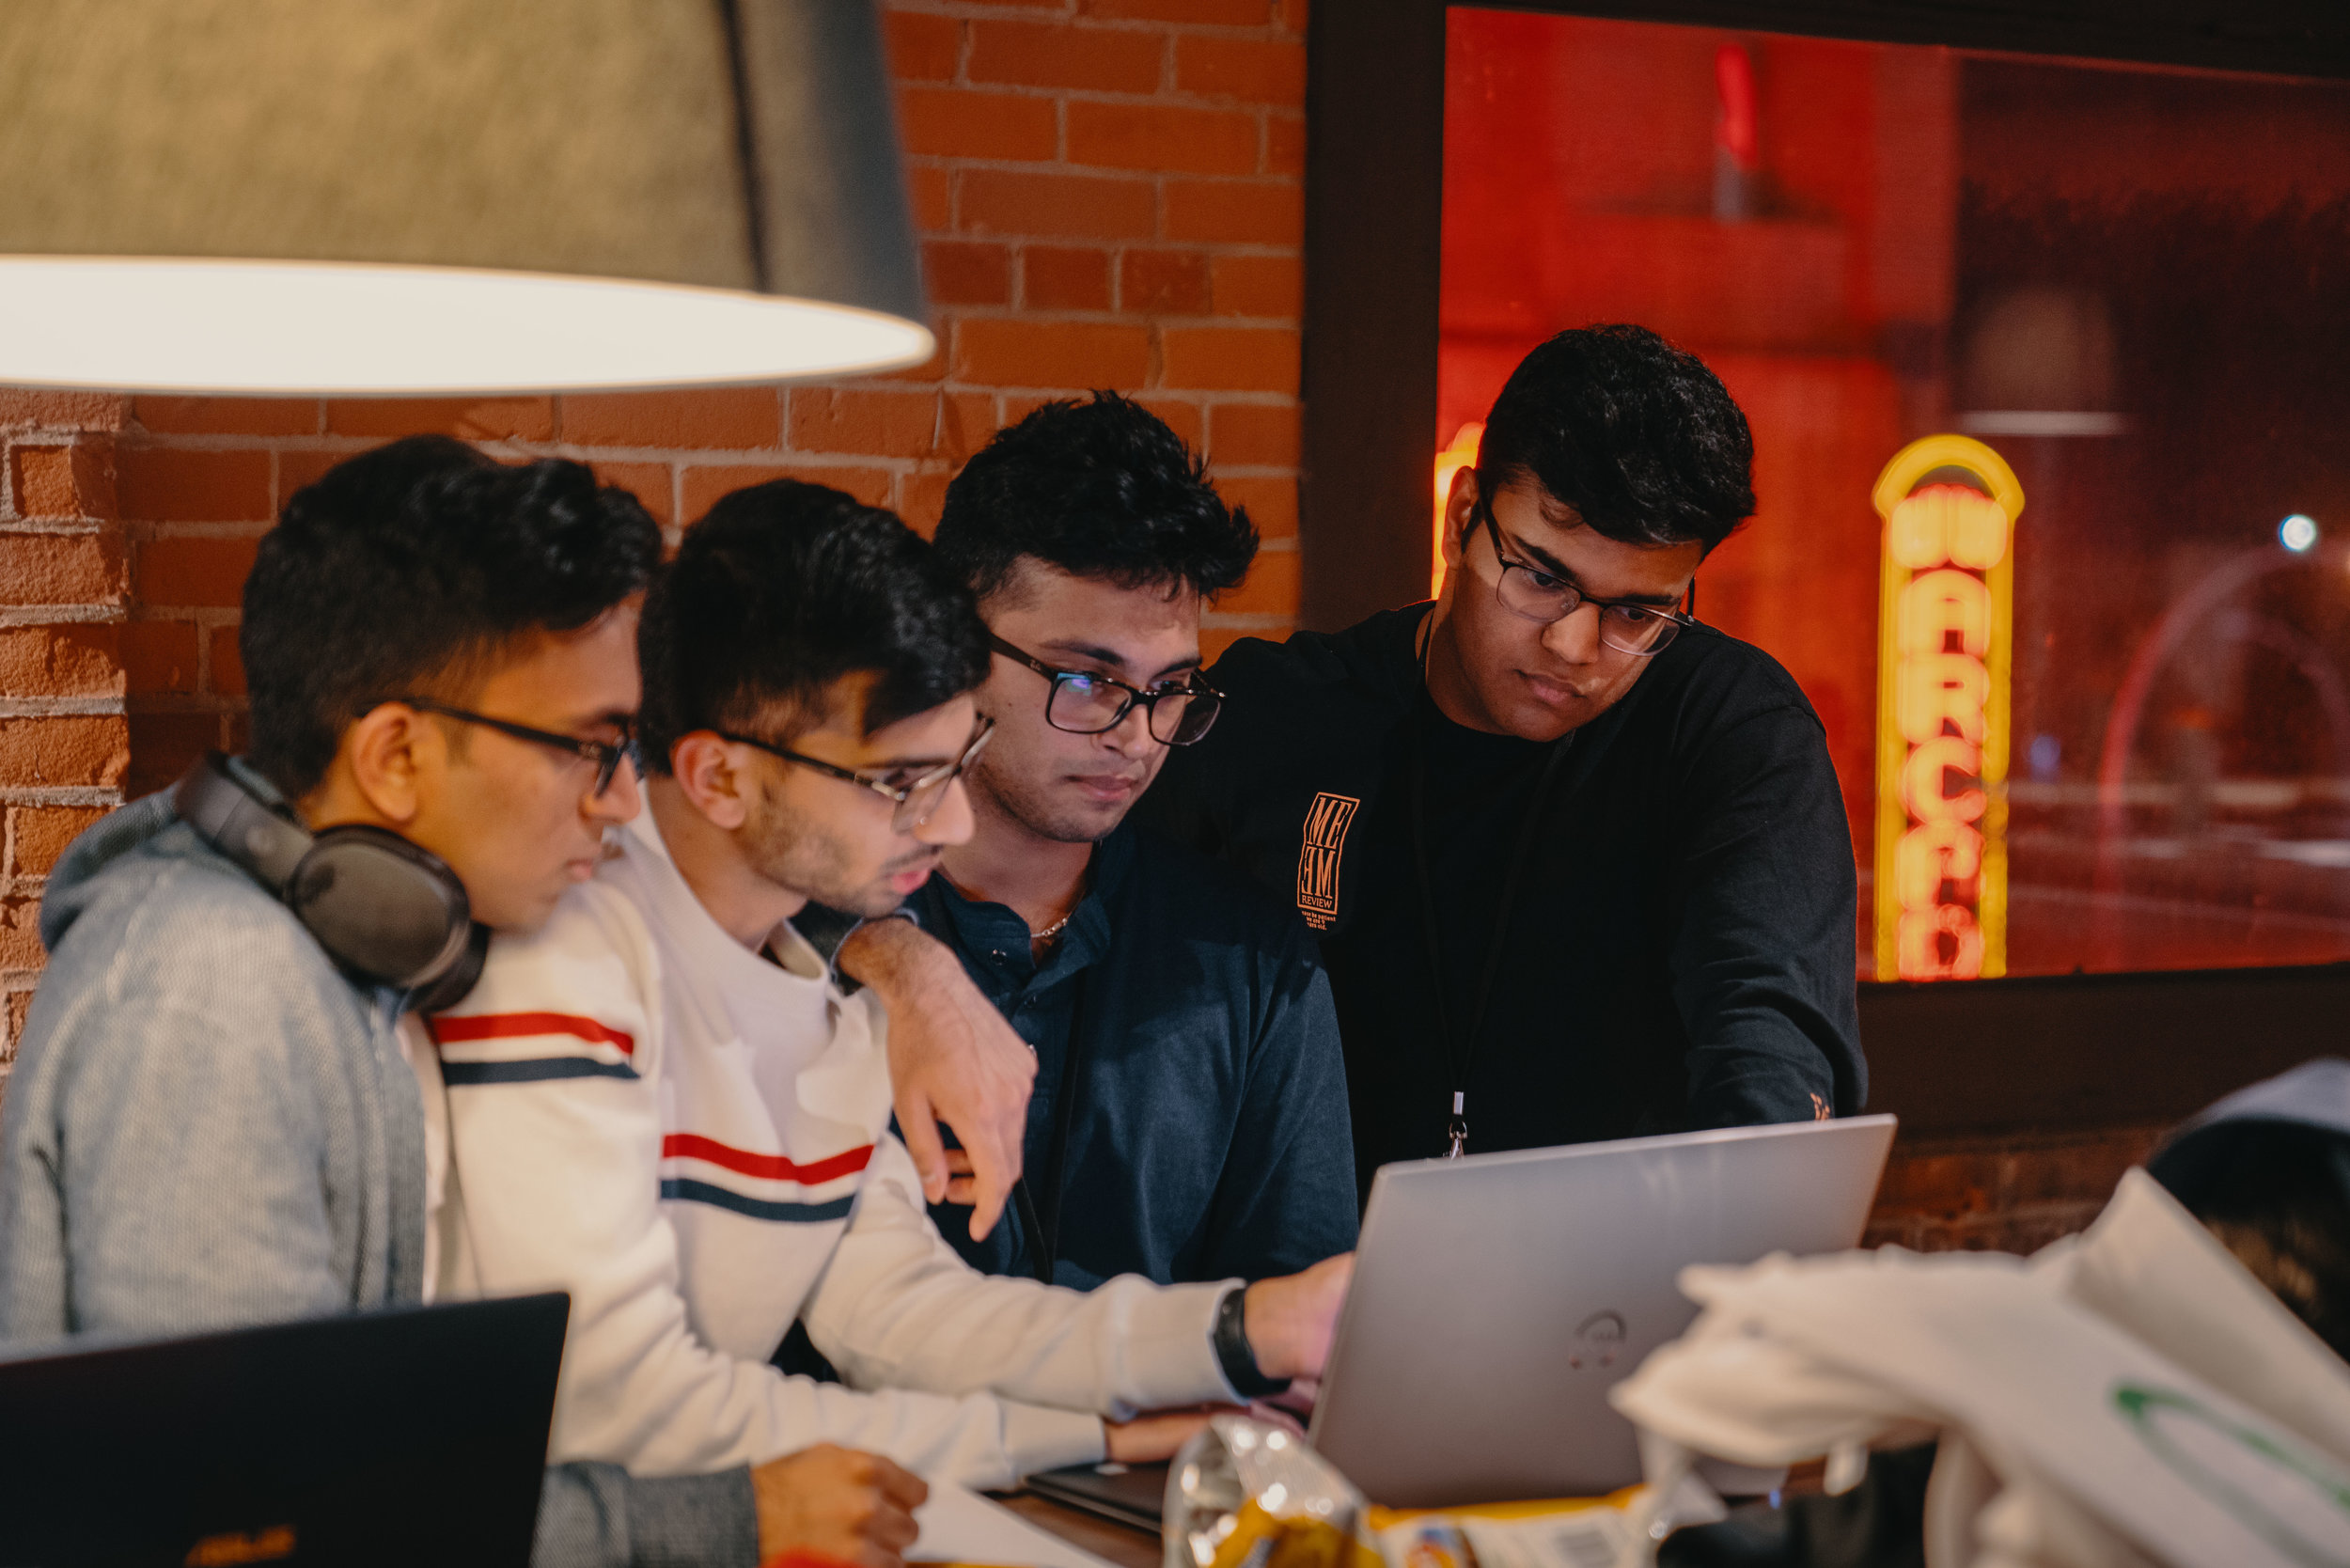 STUDENT SUMMER PROGRAM - Do you have an idea for a tech product & want to dedicate more time to moving it forward? Find out how you can get access to programs, space, and mentorship!Learn More